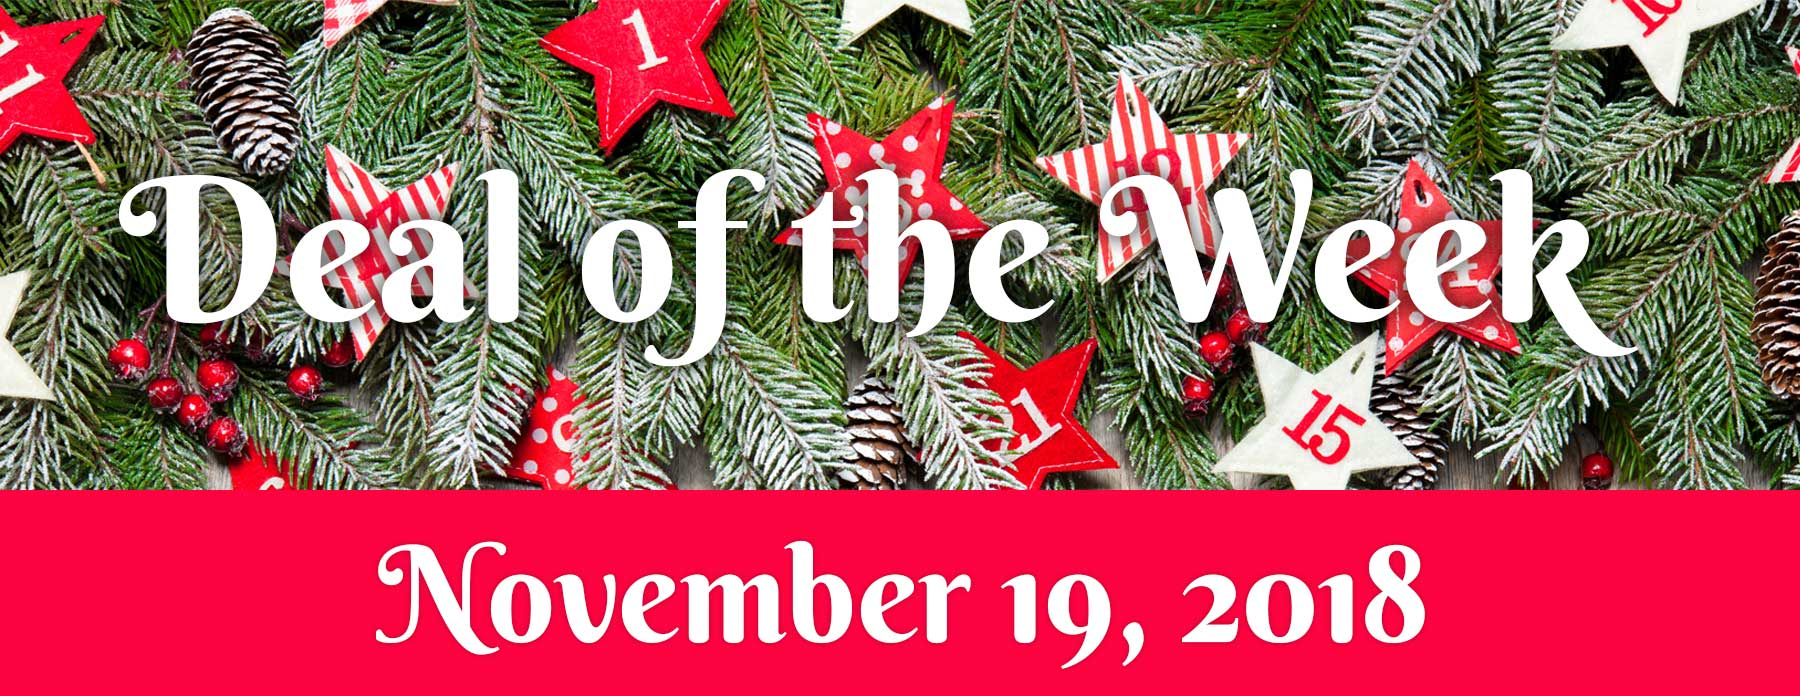 Deal Of The Week – November 19, 2018